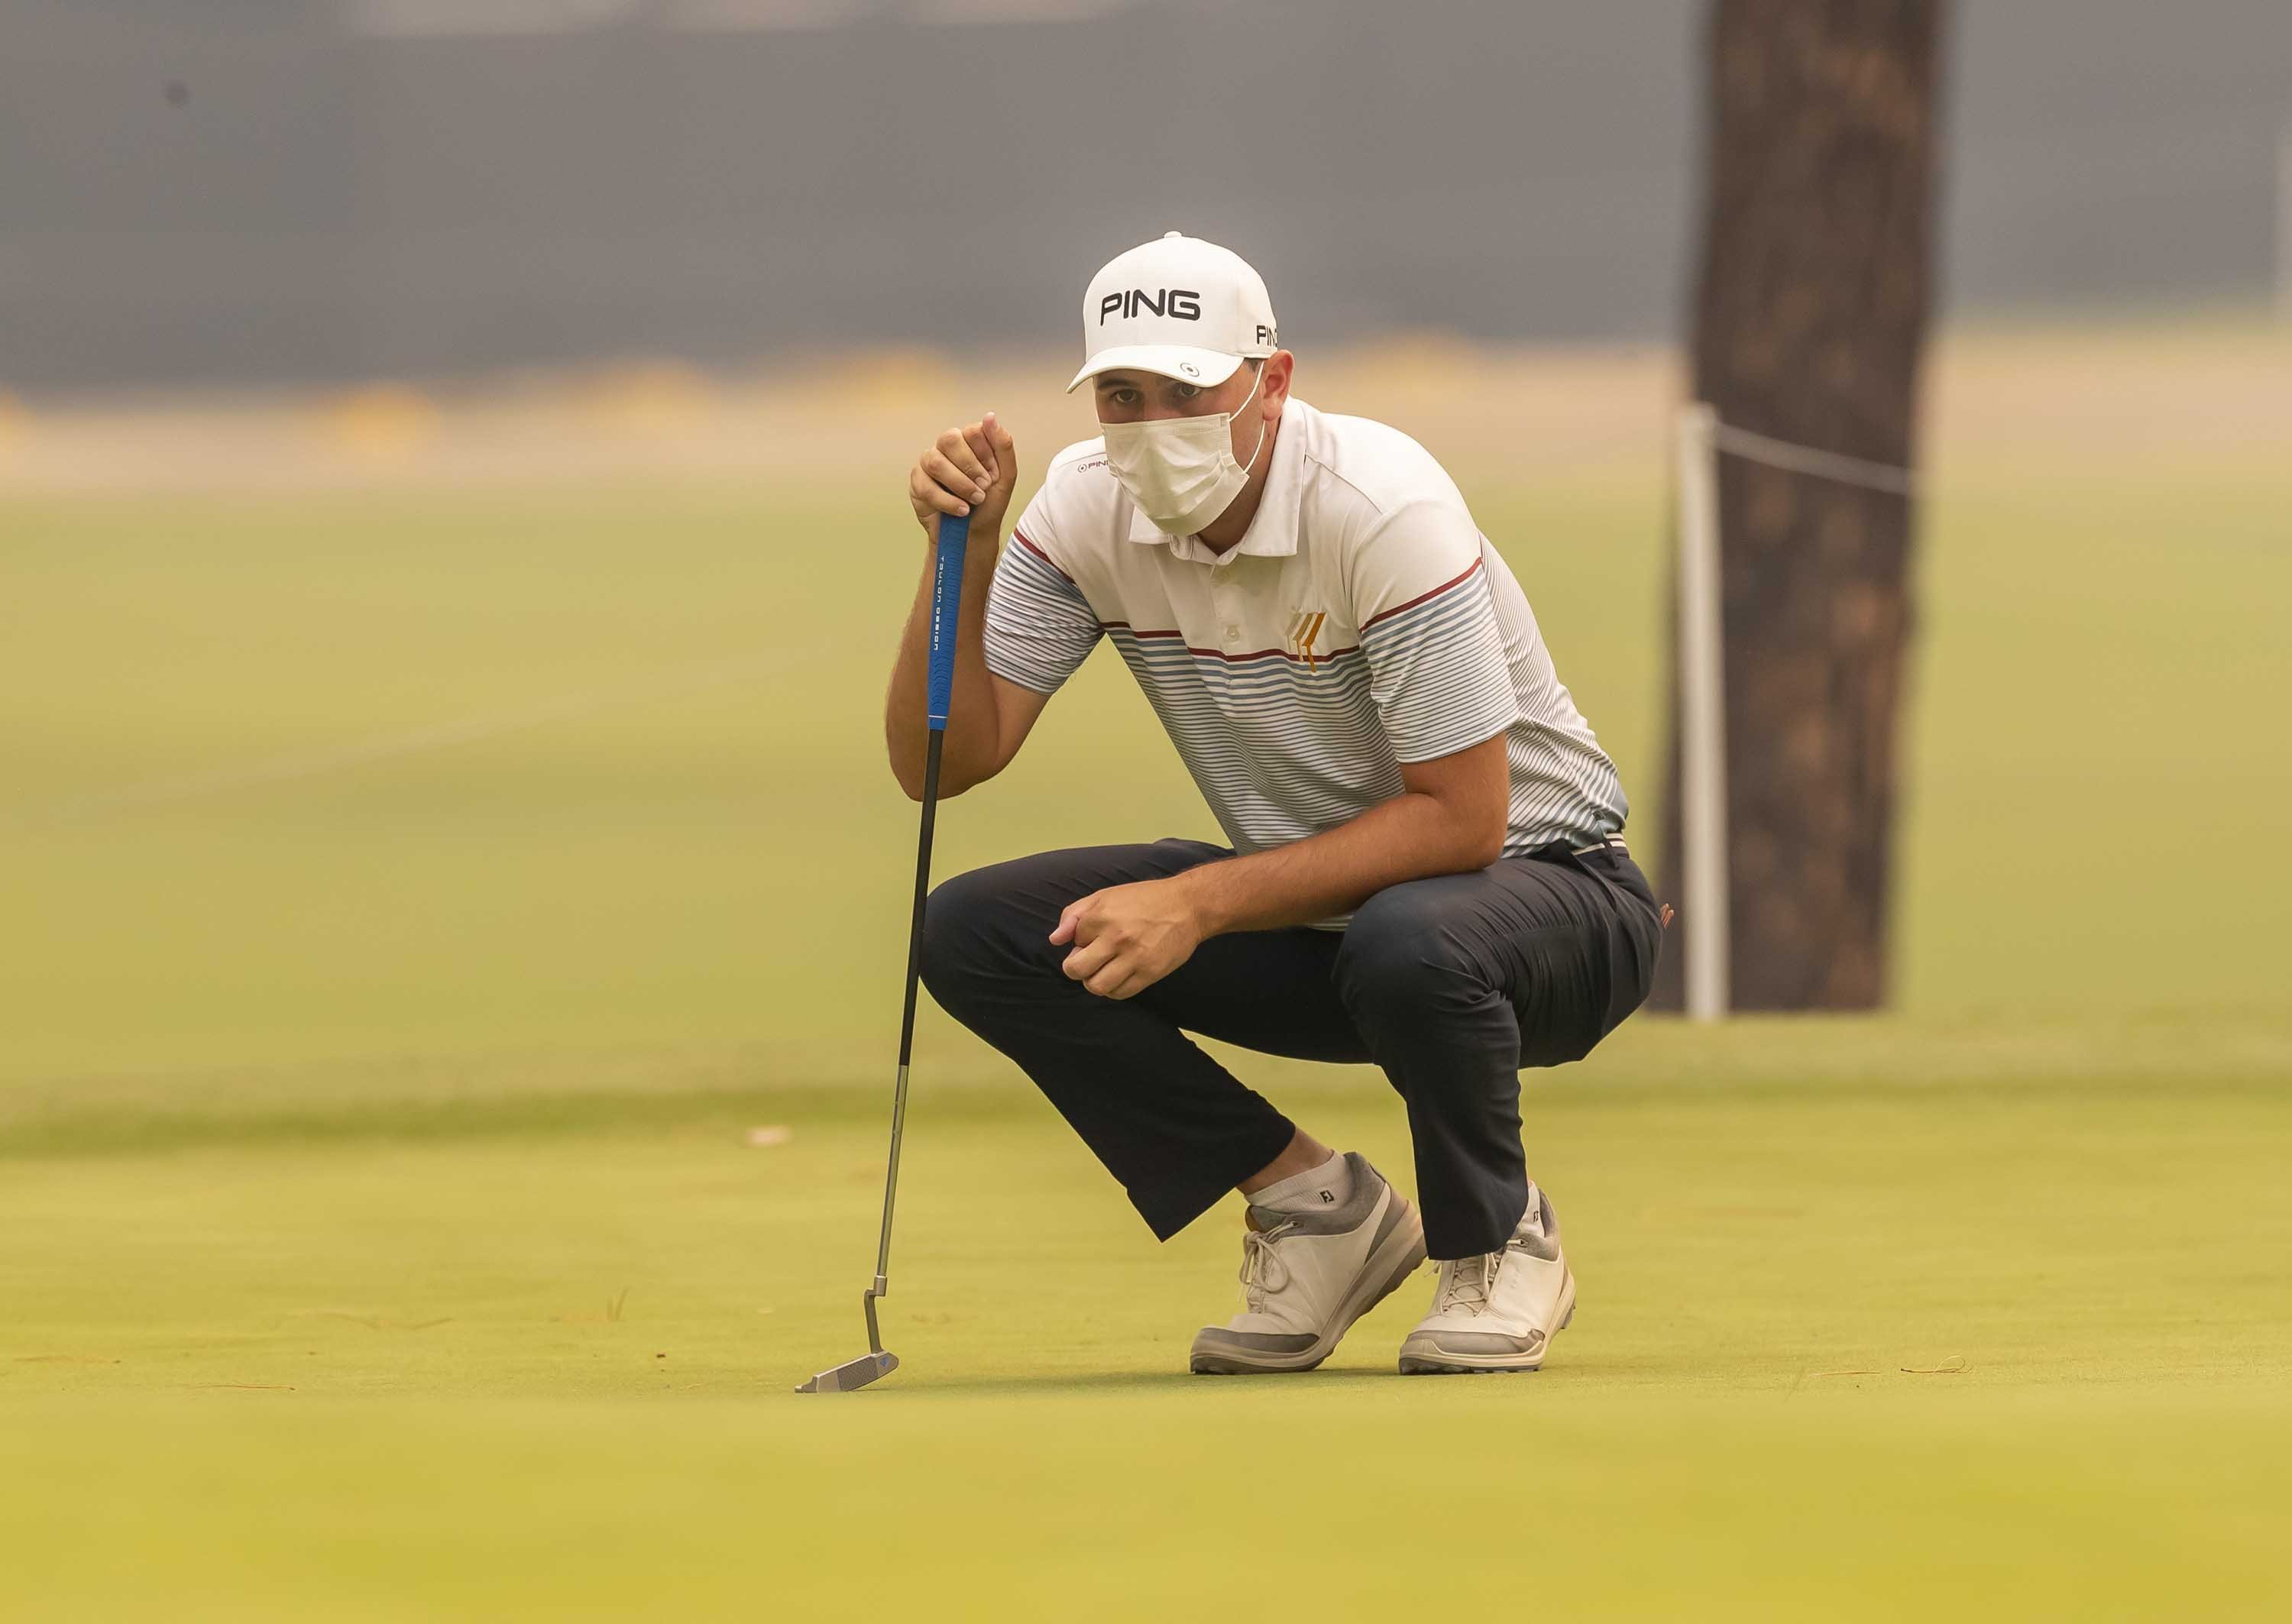 Bushfire smoke wreaks havoc at Australian golf tournament